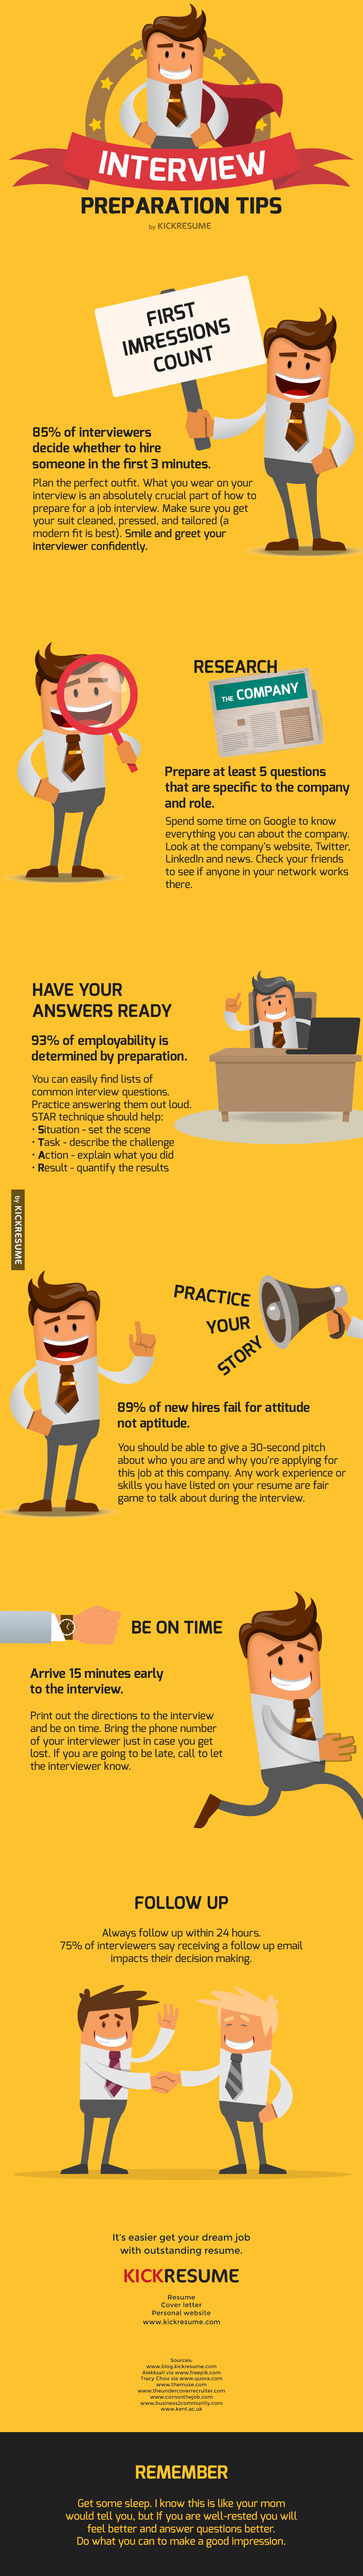 job interview preparation tips perfect resume and cover letter are just a click away